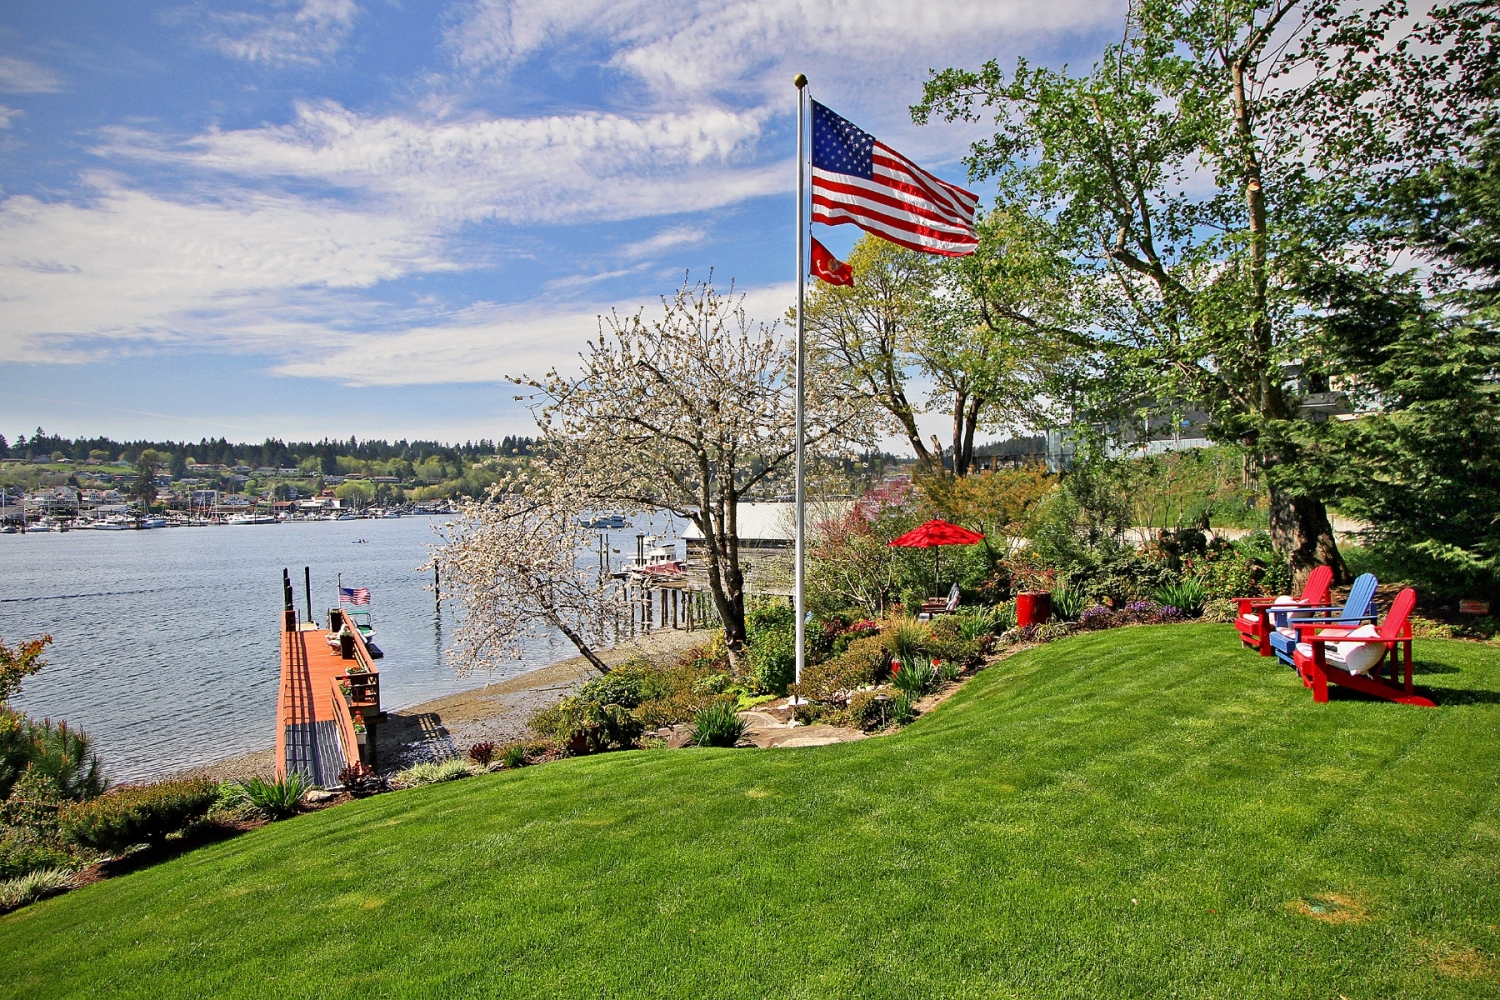 "<p>This beautiful and custom waterfront home holds a new record for Gig Harbor - the highest selling home at $3.5M! Listed by Michael Morrison of Sotheby's this home is *unfortunately* not on the market anymore, but Morrison was kind enough to give us a sneak peek. The beauty home sits on the shores of Gig Harbor Bay with a 200' pier with deep water dock, an open floor plan with soaring 17' ceilings, chef's kitchen with Carrera marble counter and butler's pantry, stainless steel appliances, luxurious en-suite with soaking tub and oversized shower, master suite with fireplace and walk in closet, Nano inspired doors, detached three car garage with potting area, soothing waterfall, multi-use Sail loft-game room-shop, built in vacuum, Quartersawn Oak floors, radiant in floor heating, remote control blinds, Ironwood Deck with Awning and Sun Screen, and SO MUCH MORE. Even though the house is sold, take a peek through our gallery and learn more at{&nbsp;}<a  href=""http://www.goodmandrive.com/"" target=""_blank"" title=""http://www.goodmandrive.com/"">Sotheby's blogpost</a>.{&nbsp;} (Image courtesy of Michael Morrison of Sotheby's).</p>"